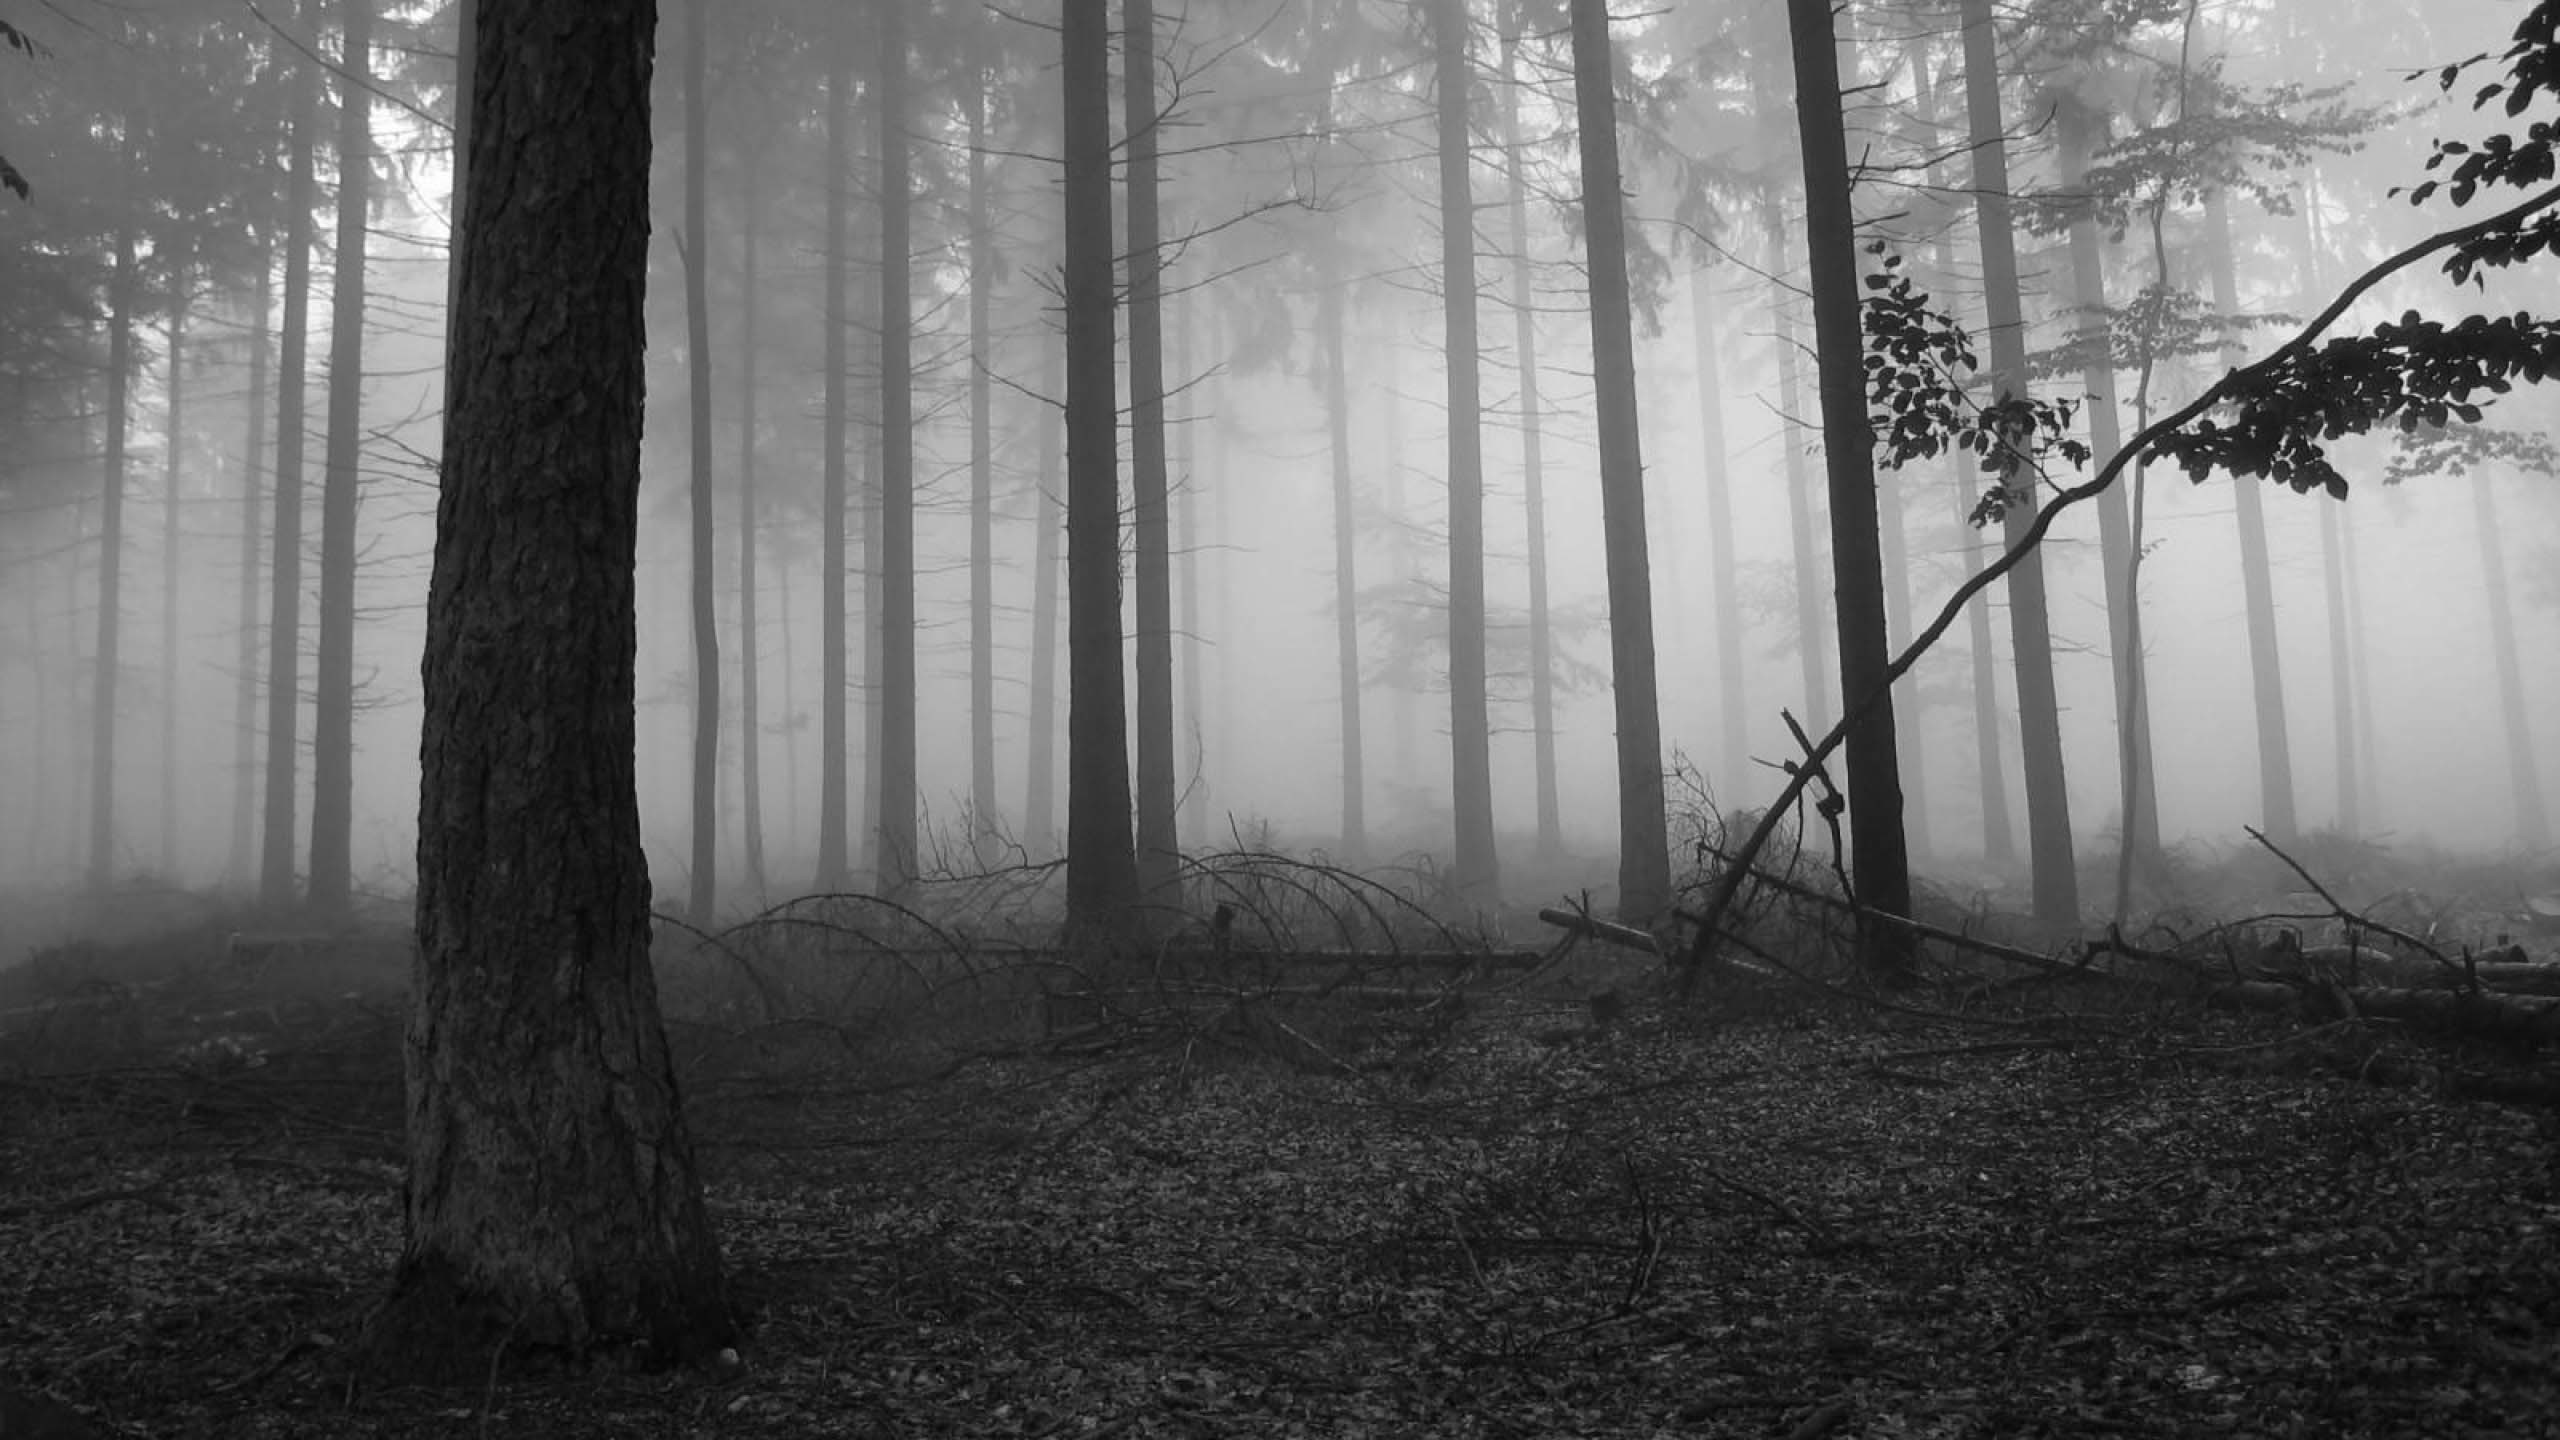 2560x1440 ... 24 Forest HD Wallpapers Backgrounds Wallpaper Abyss | Black Forest .